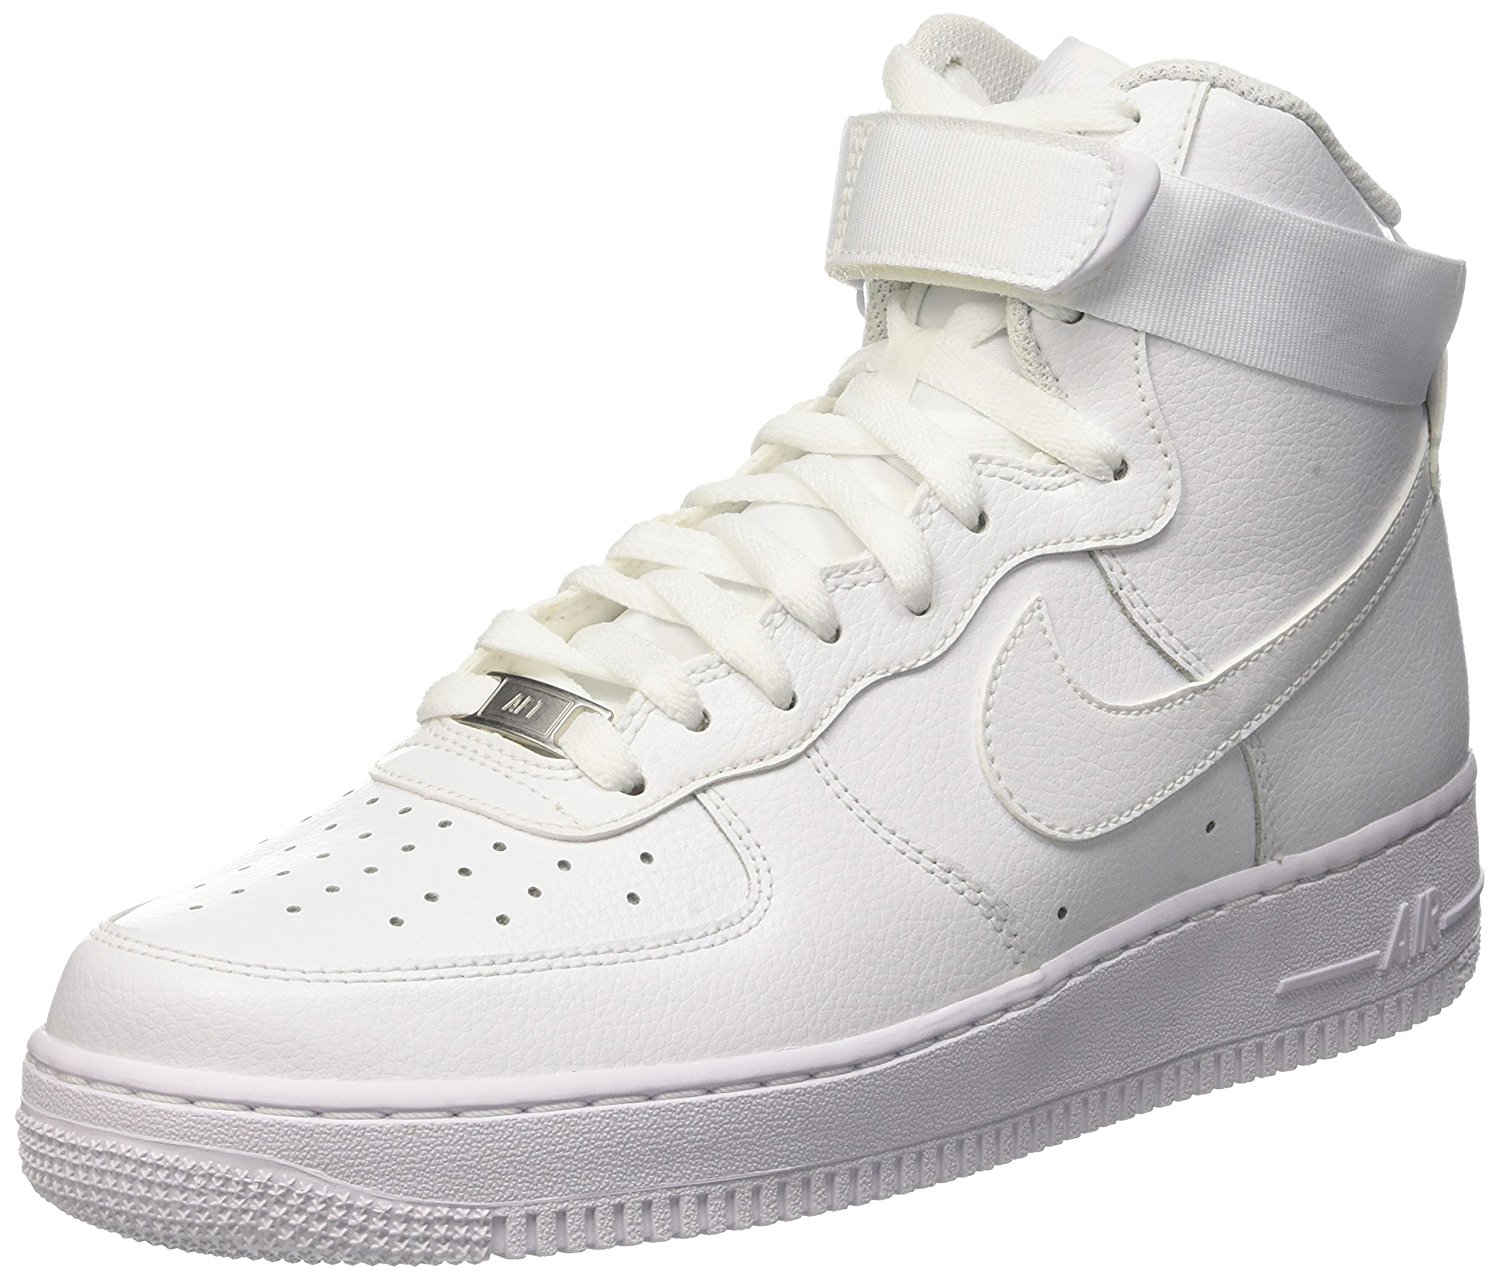 the latest 9b640 327ac Nike Air Force 1 High Top Angled View ...